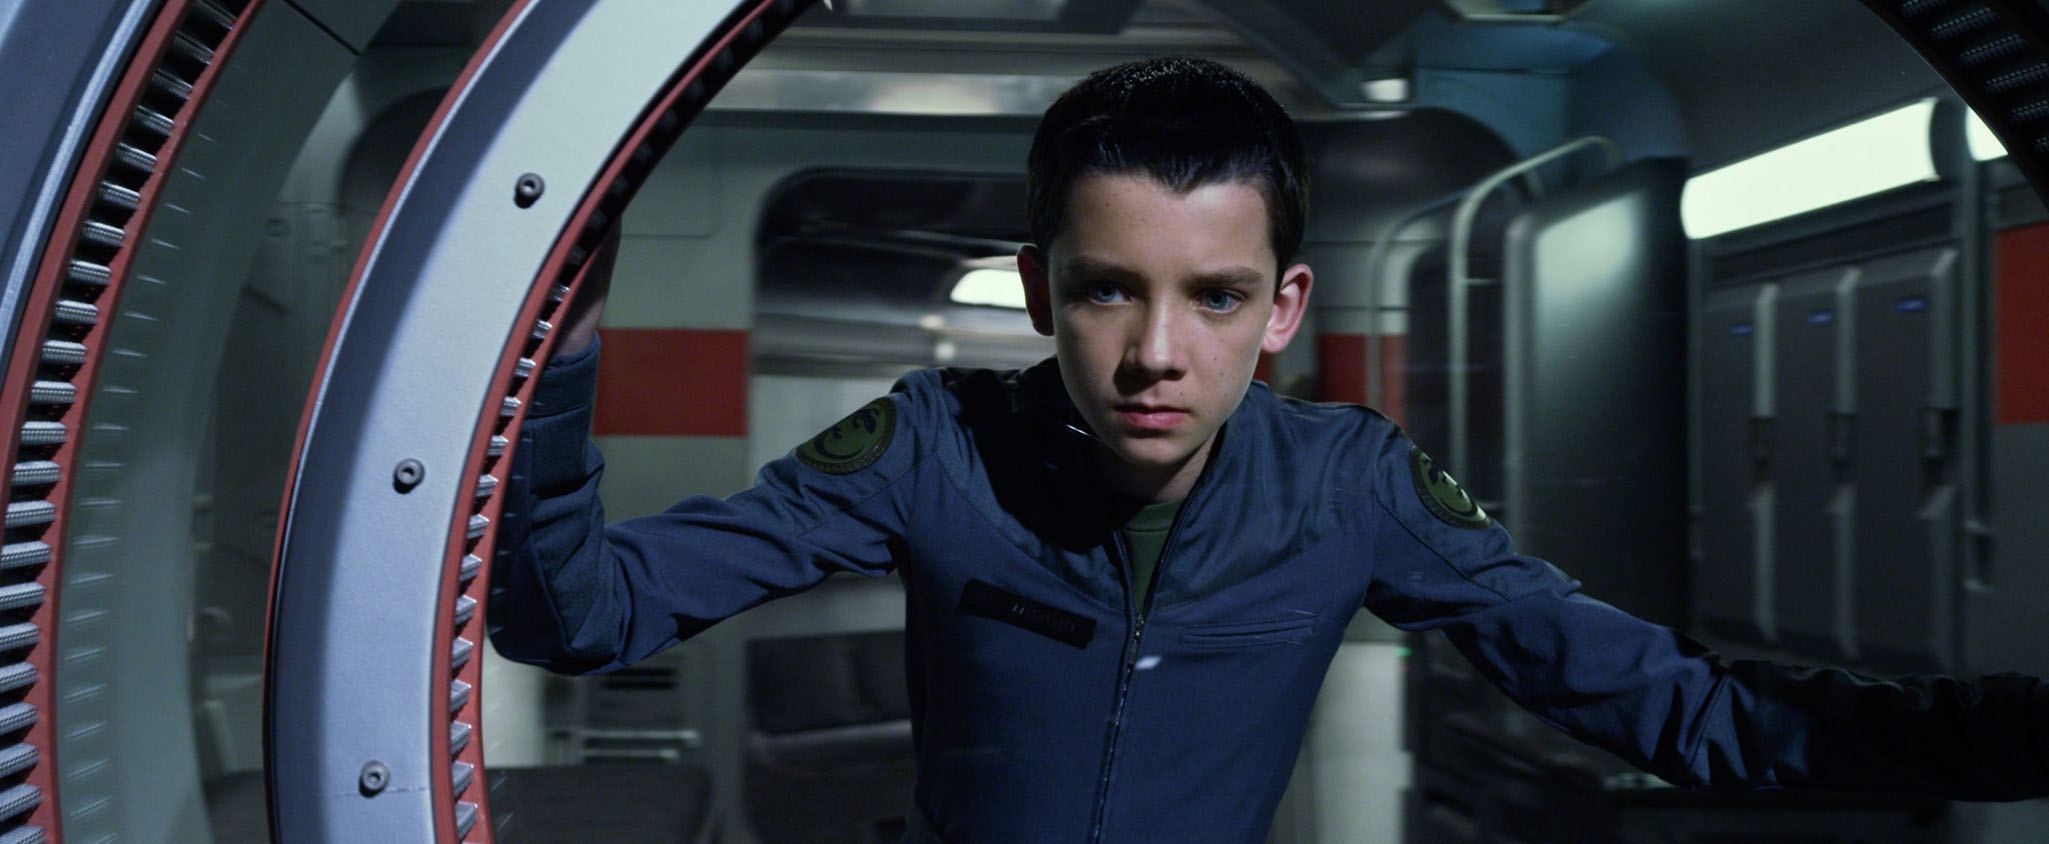 Asa Butterfield as Ender Wiggin (above and below left with Ford's gruff Graff) in Ender's Game.